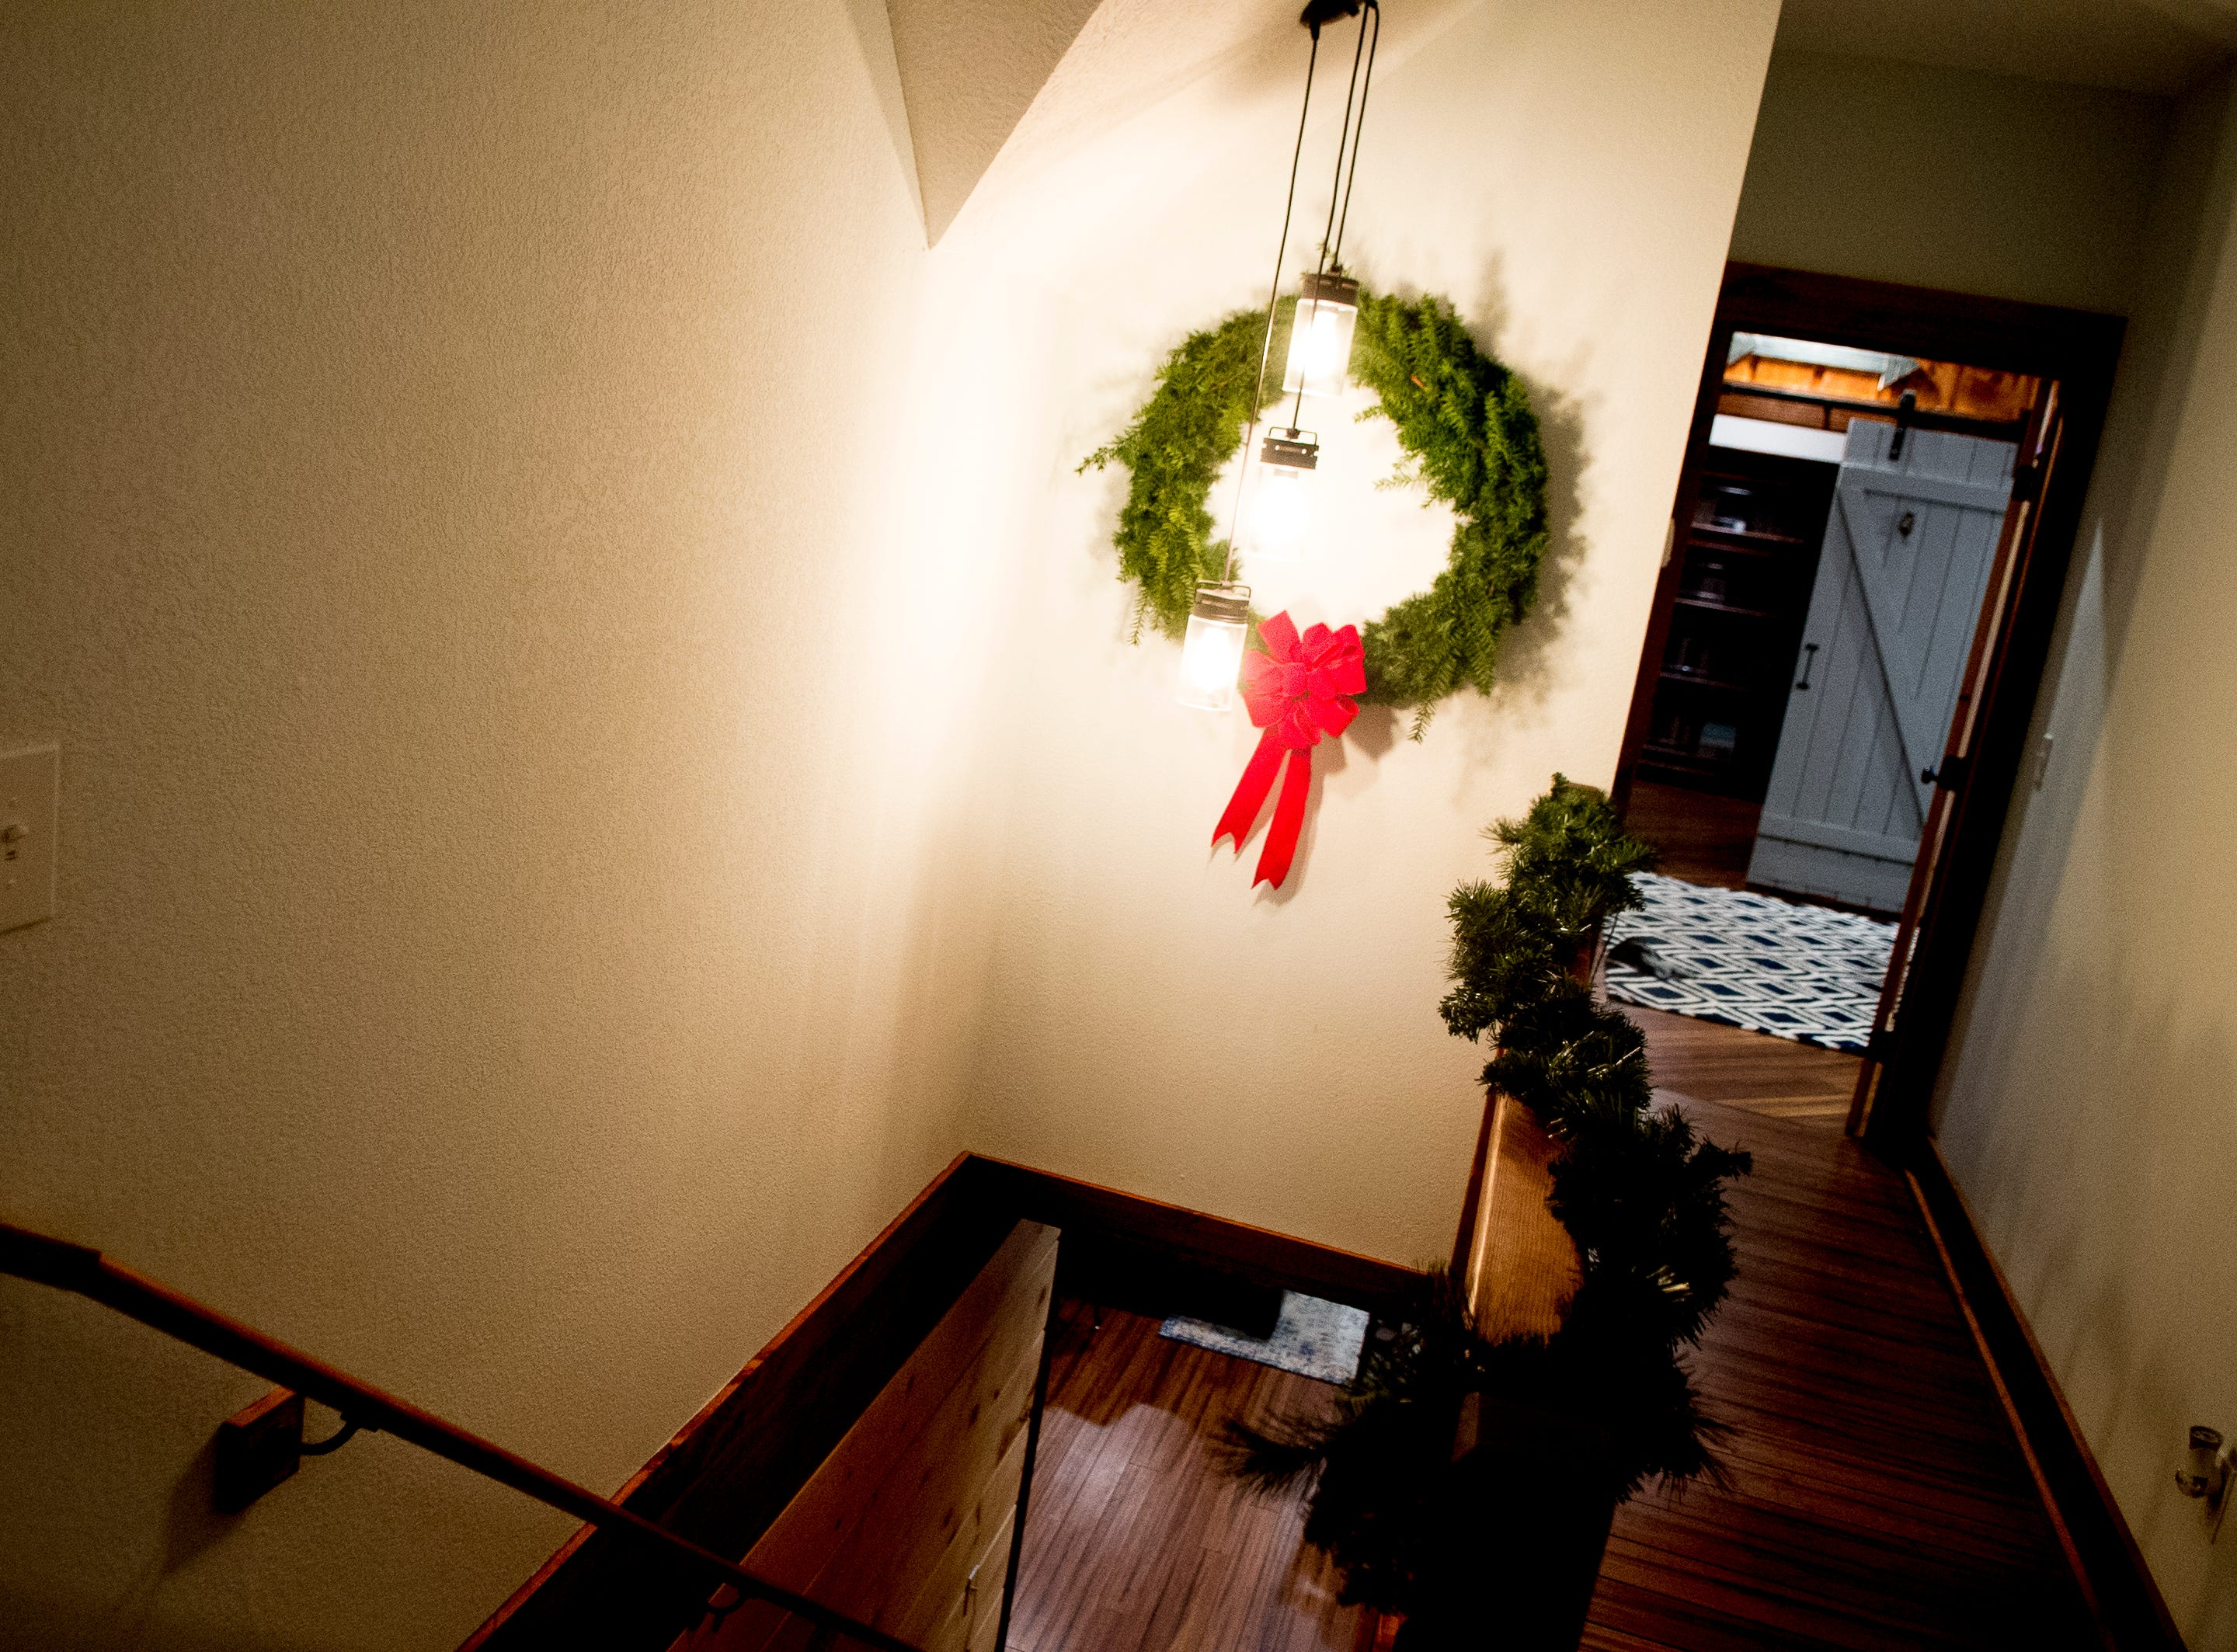 The staircase inside the Greiner family home in West Knoxville, Tennessee on Thursday, December 20, 2018.